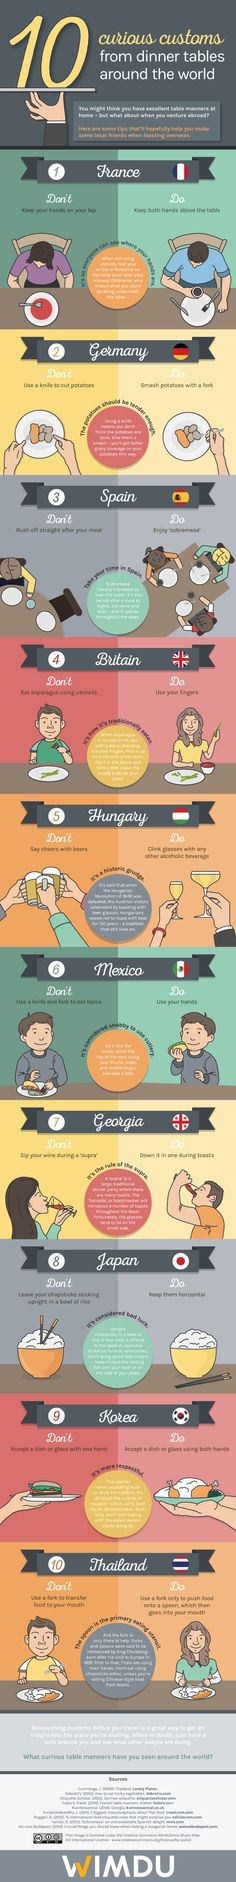 10 Curious Customs from Dinner Tables Around the world #infographic #Dinner #Food #Travel #Traditions